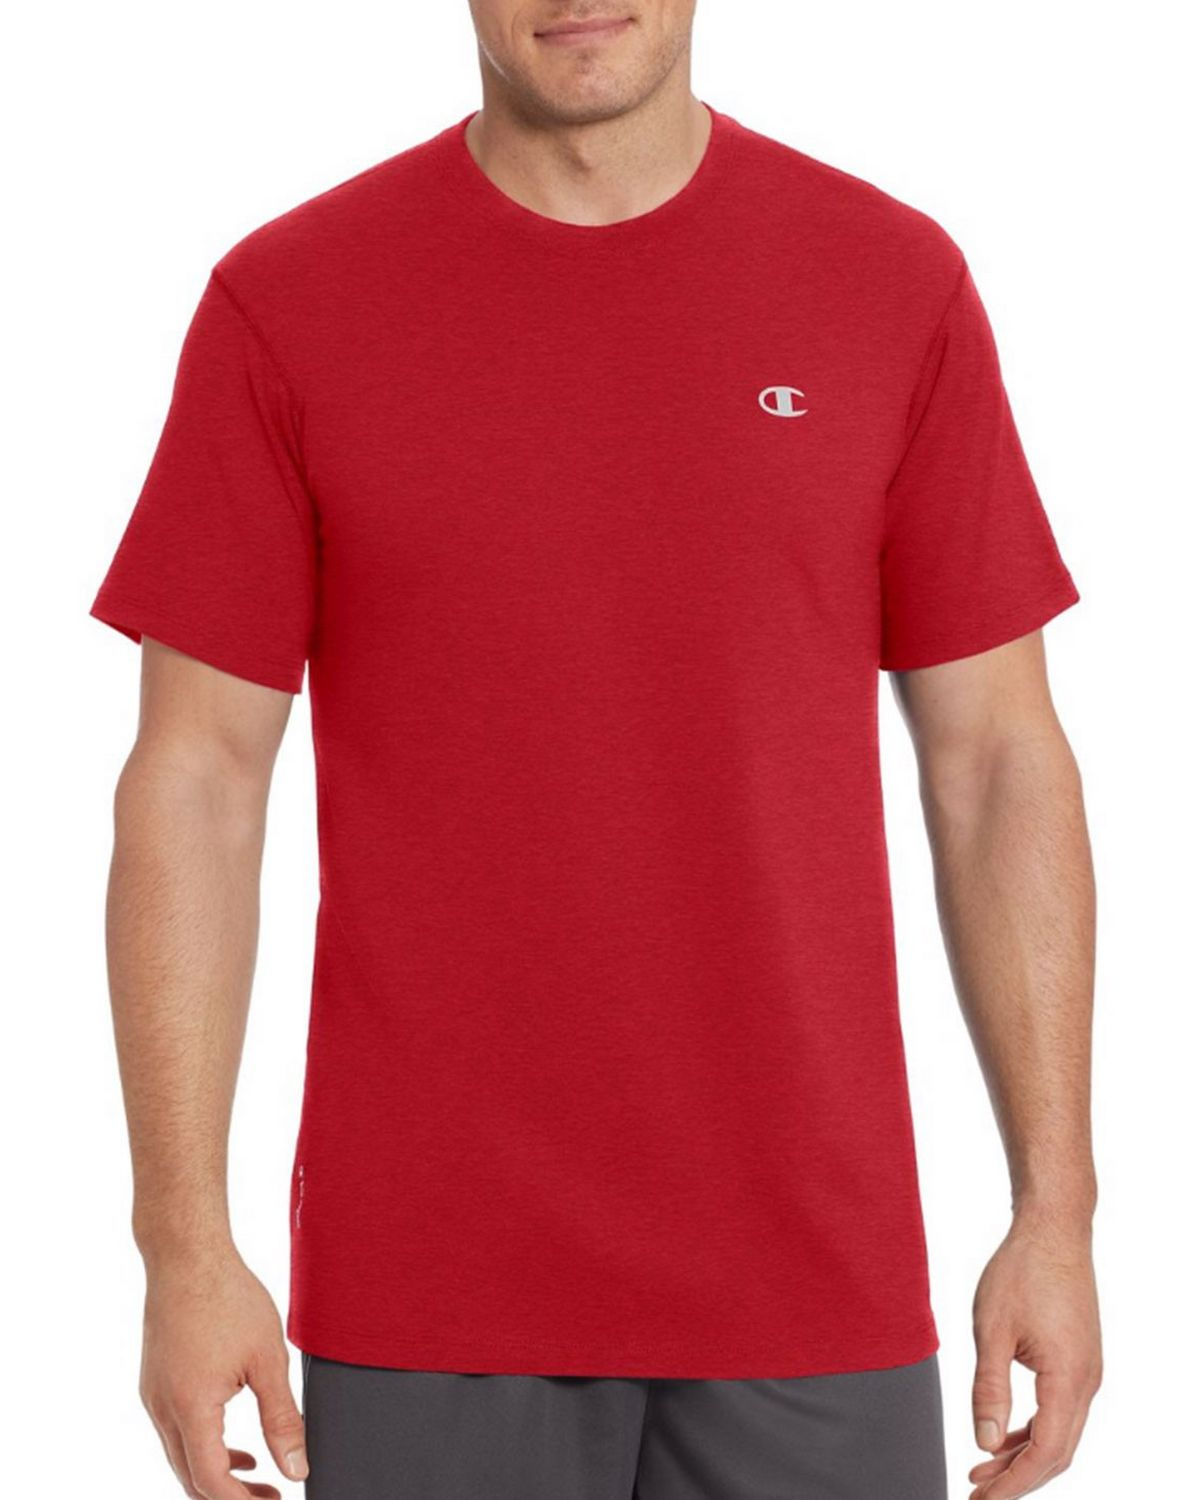 Champion T0351 Vapor Mens Cotton Tee - Granite Heather - L T0351